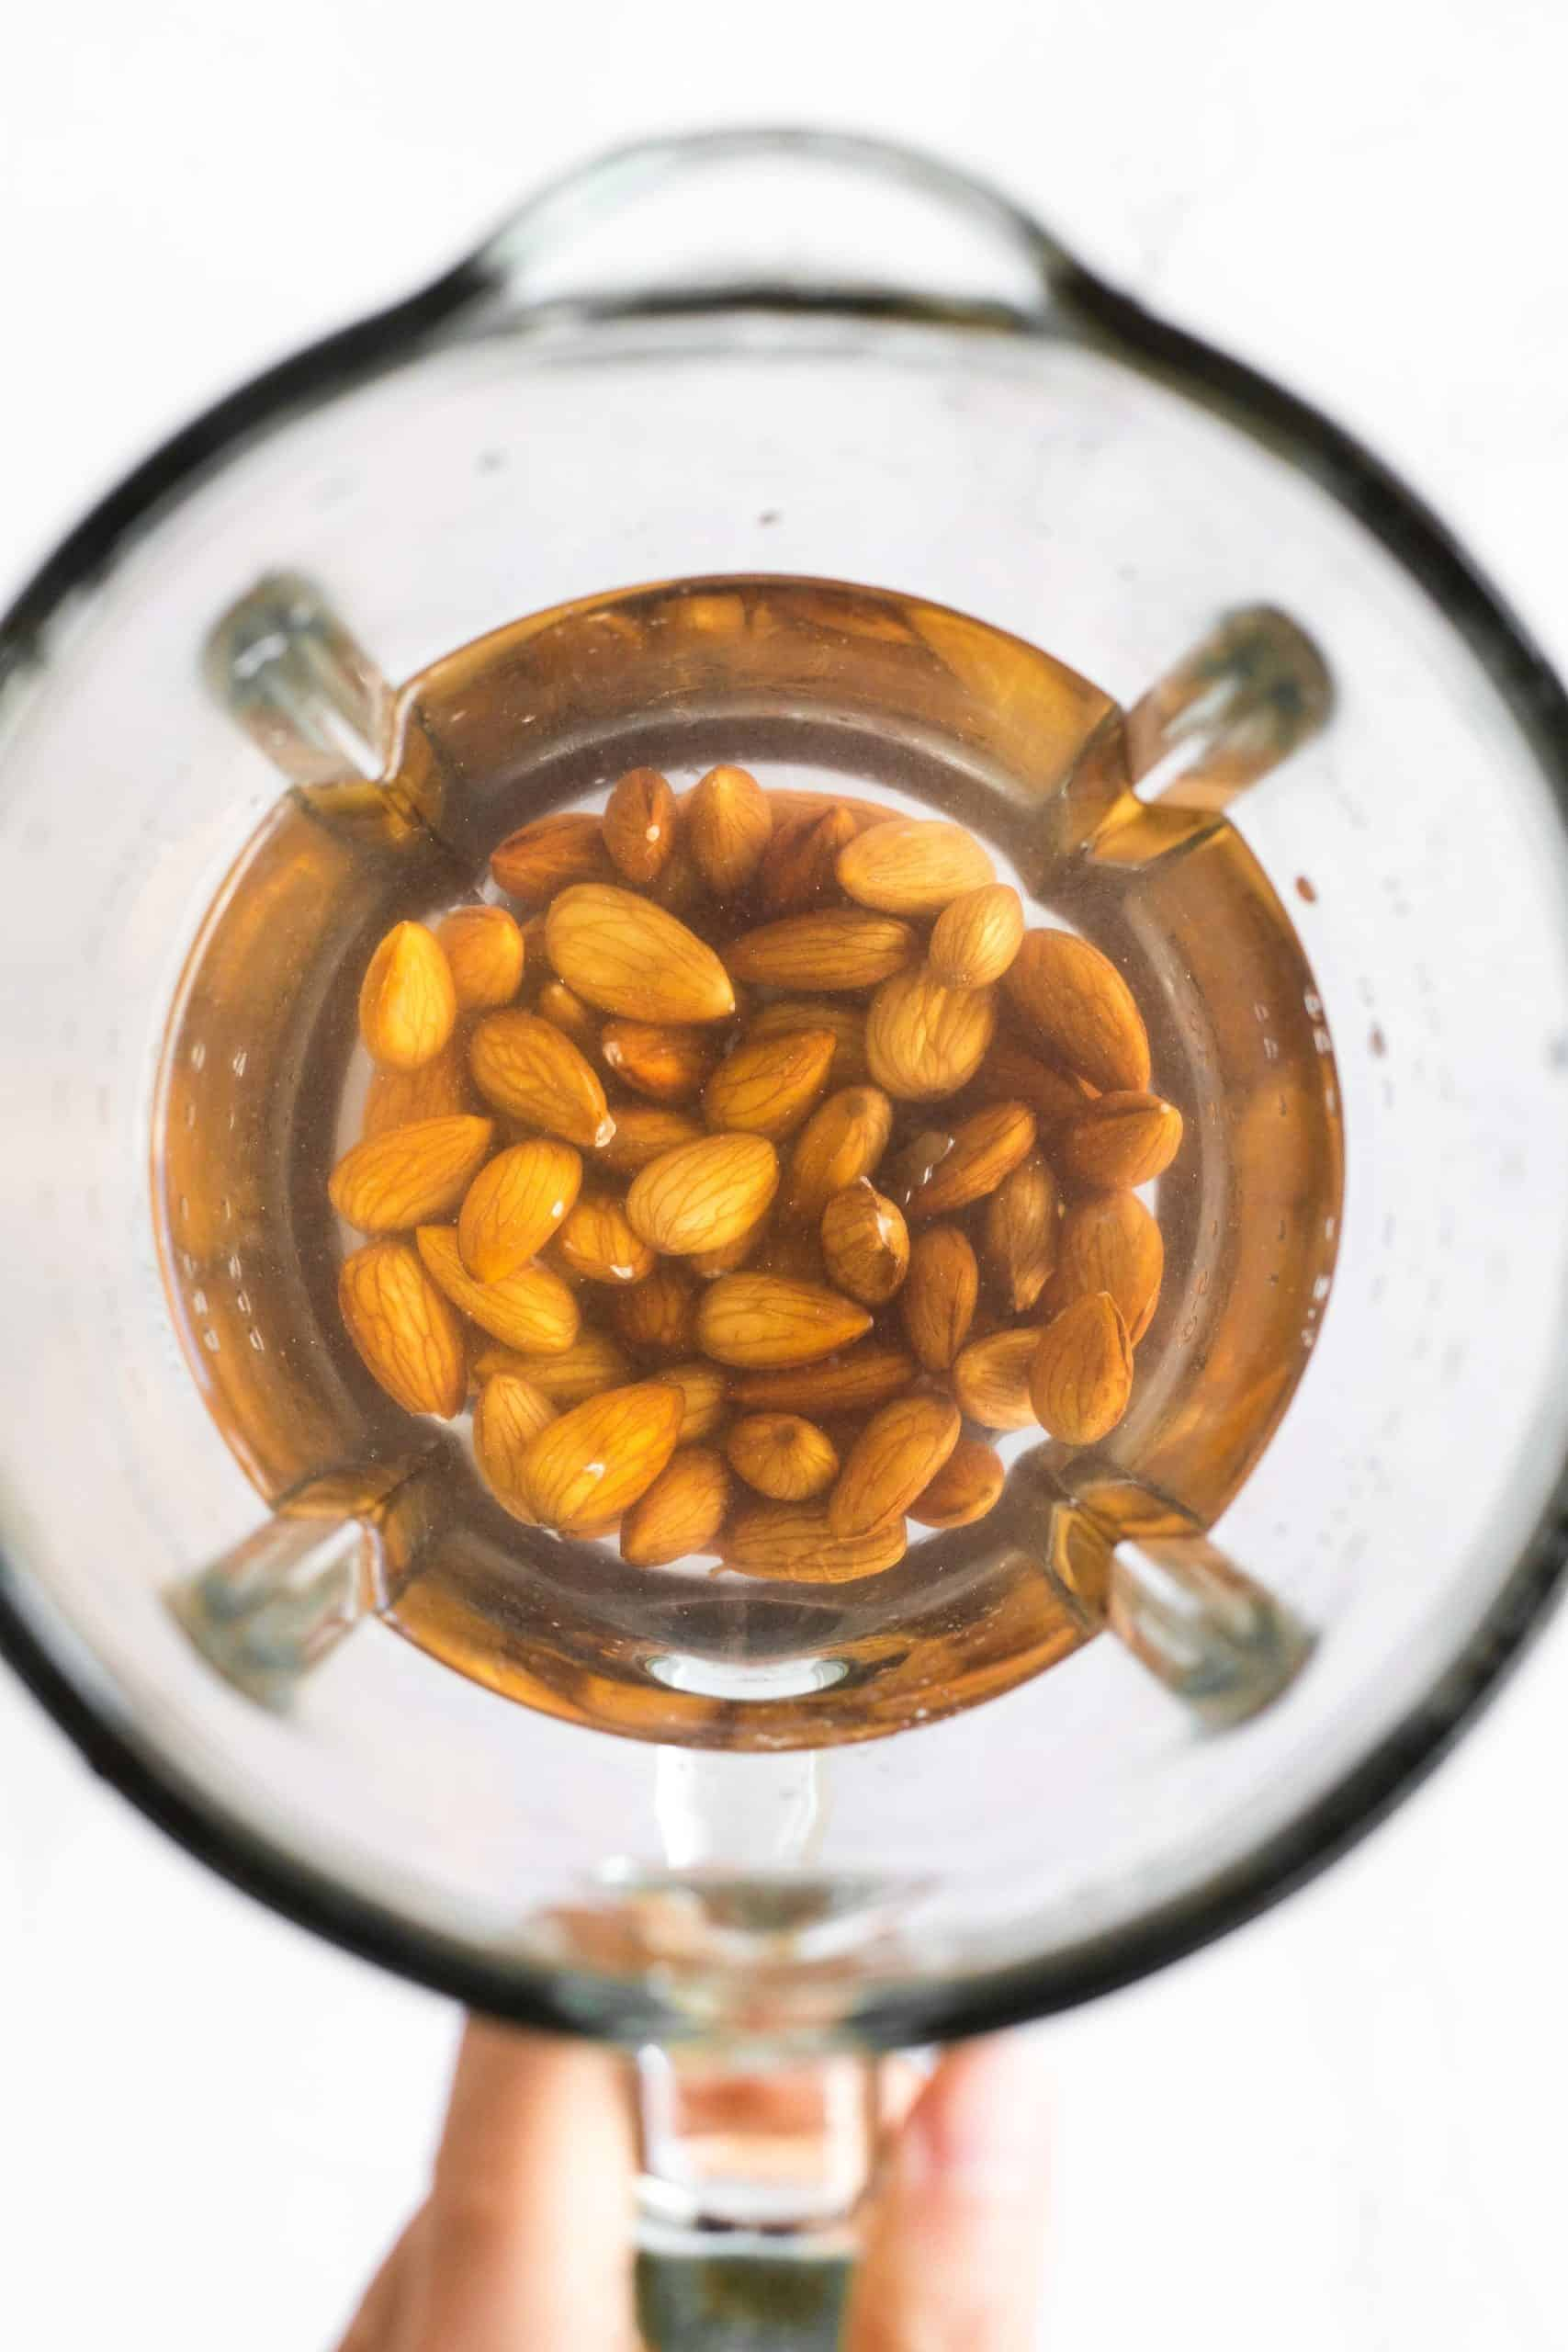 Raw almonds a water in a the bowl of a blender.